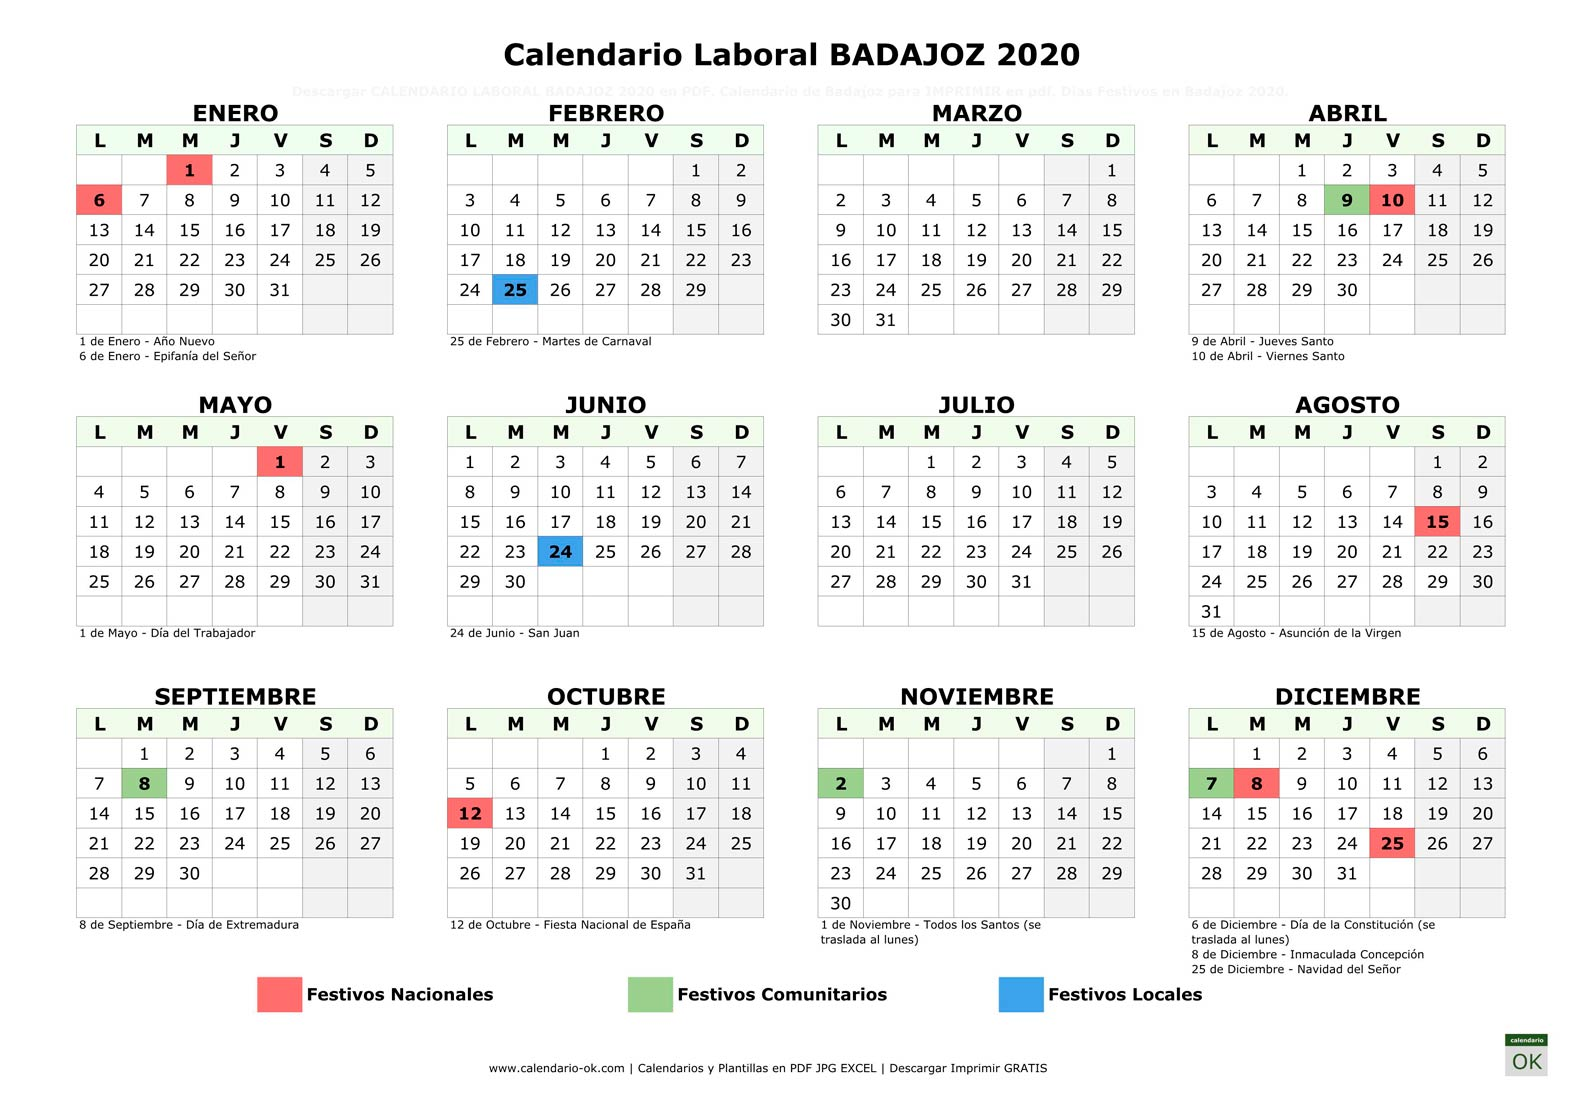 Calendario Laboral BADAJOZ 2020 horizontal